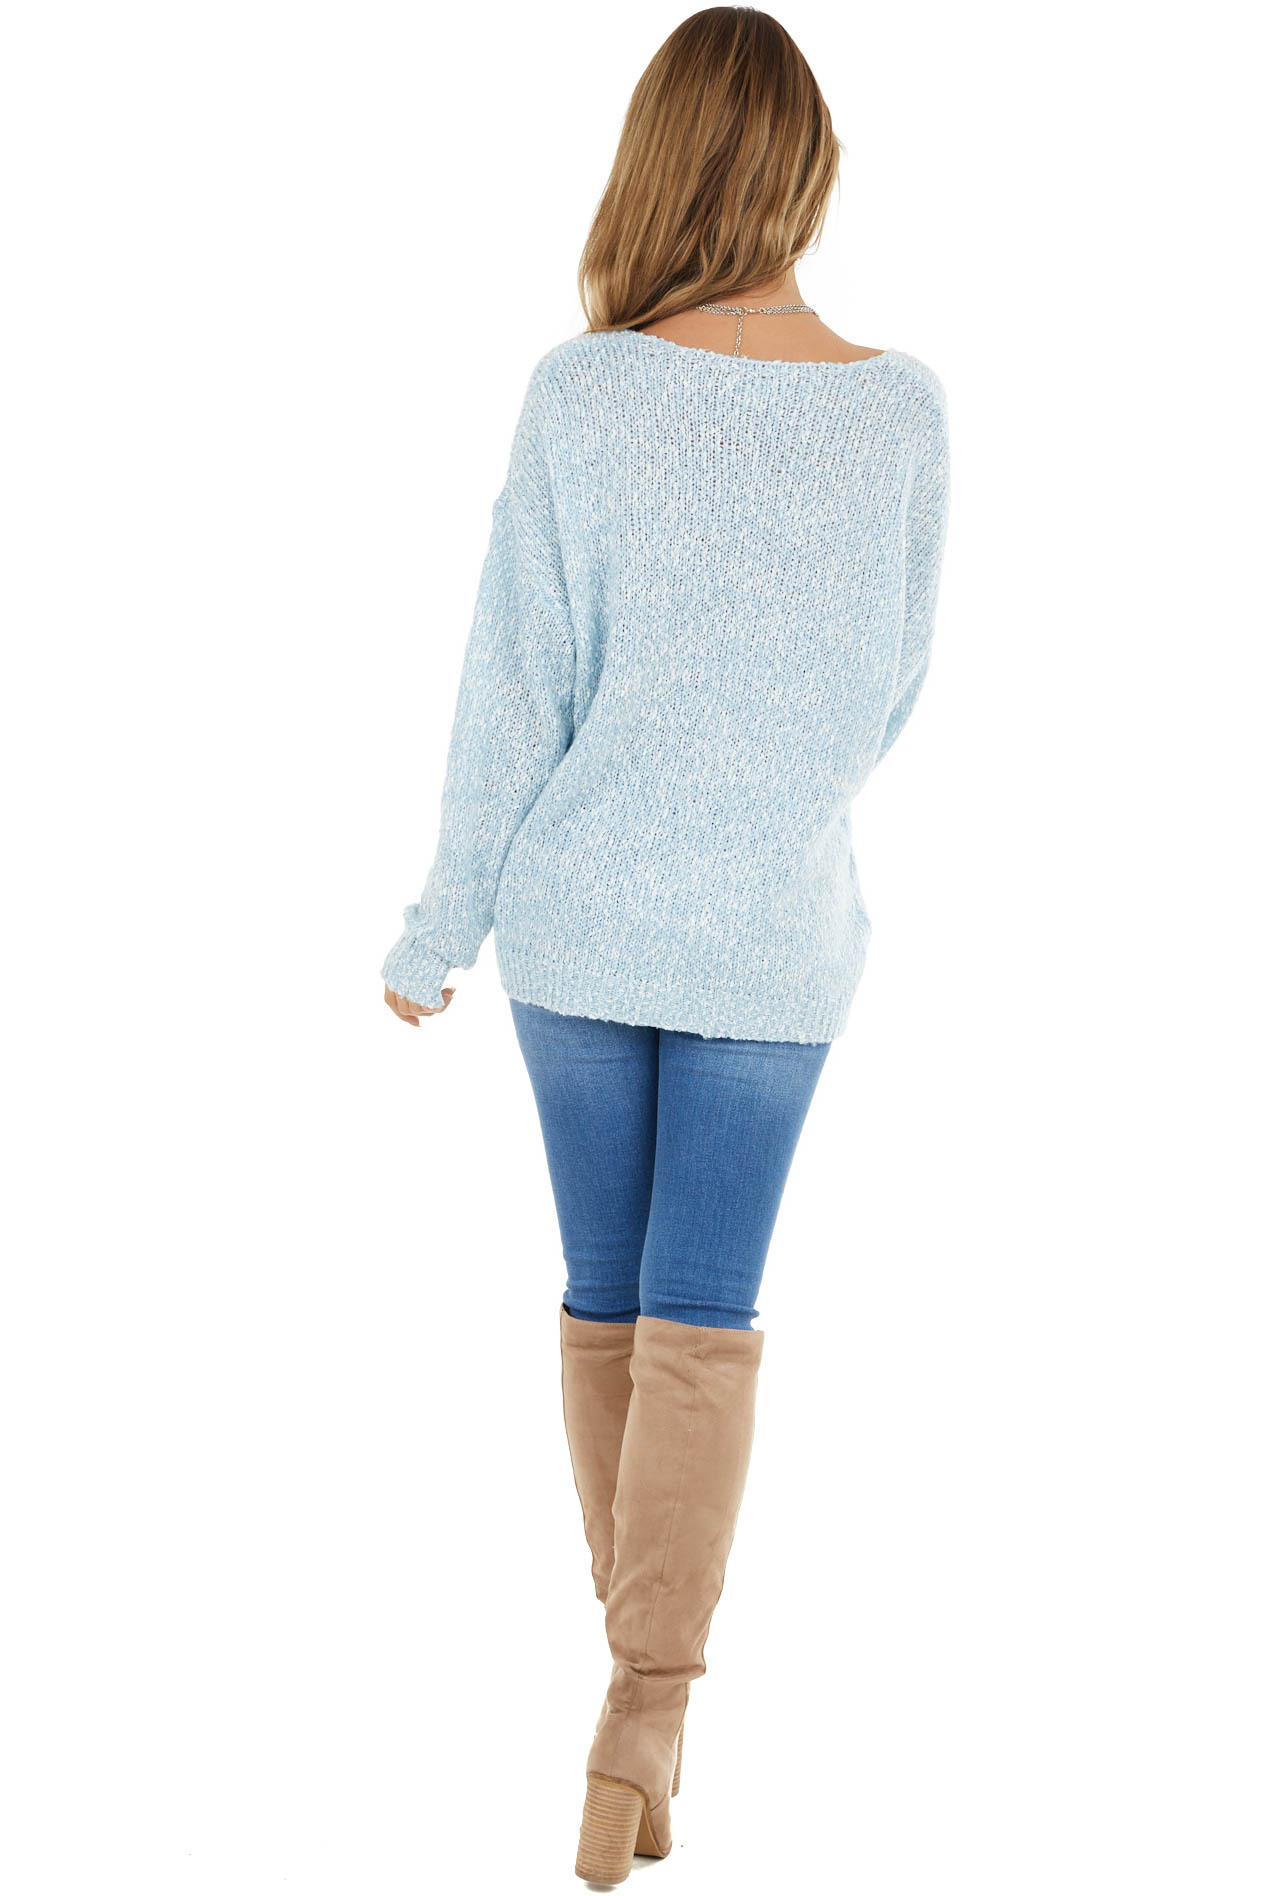 Baby Blue and White Two Toned Knit Sweater with Long Sleeve